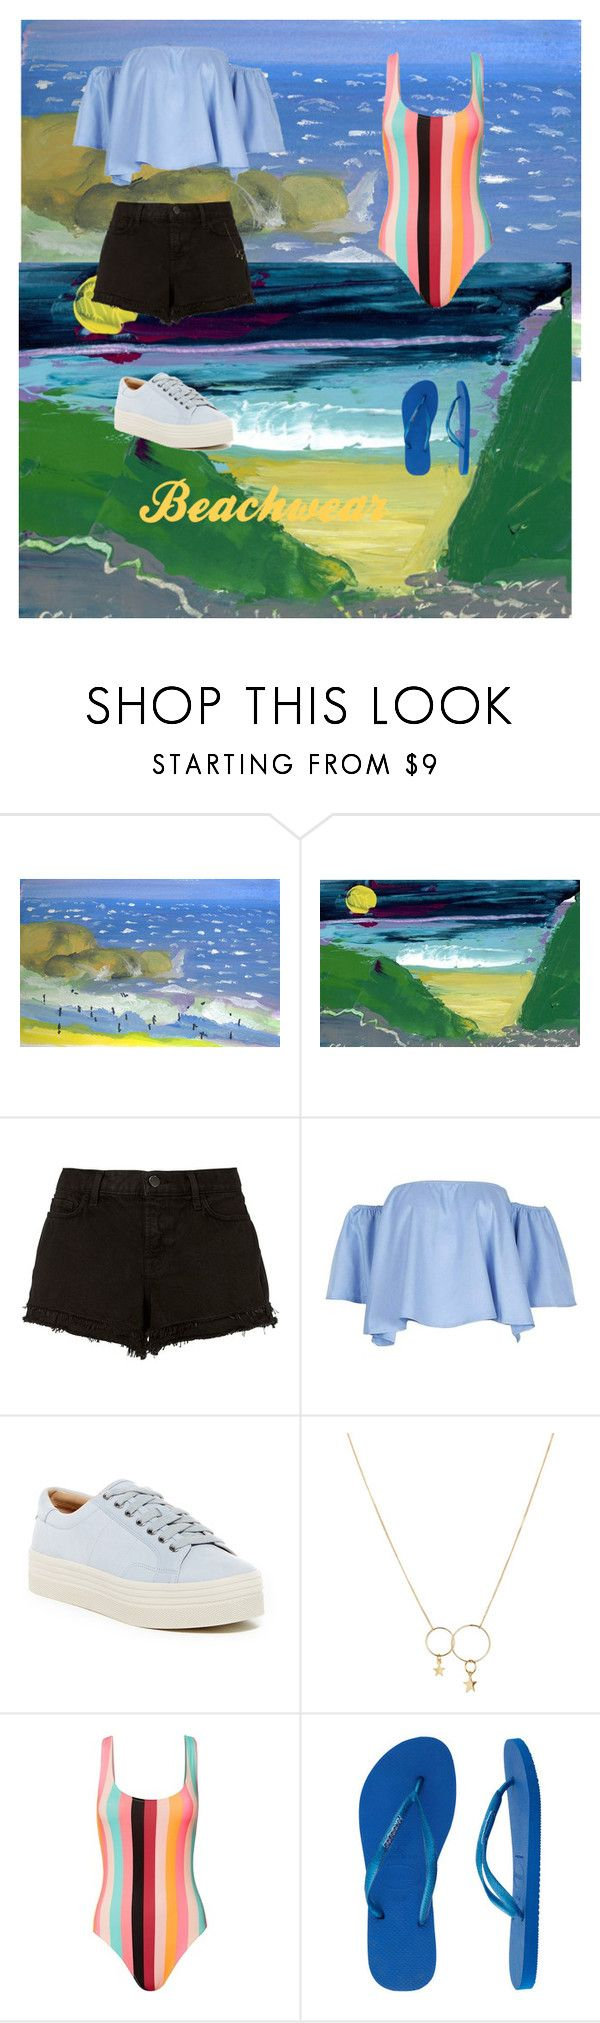 """""""Beach wear"""" by anniedonlon ❤ liked on Polyvore featuring J Brand, Marc Fisher LTD, Zimmermann, Solid & Striped and Havaianas"""